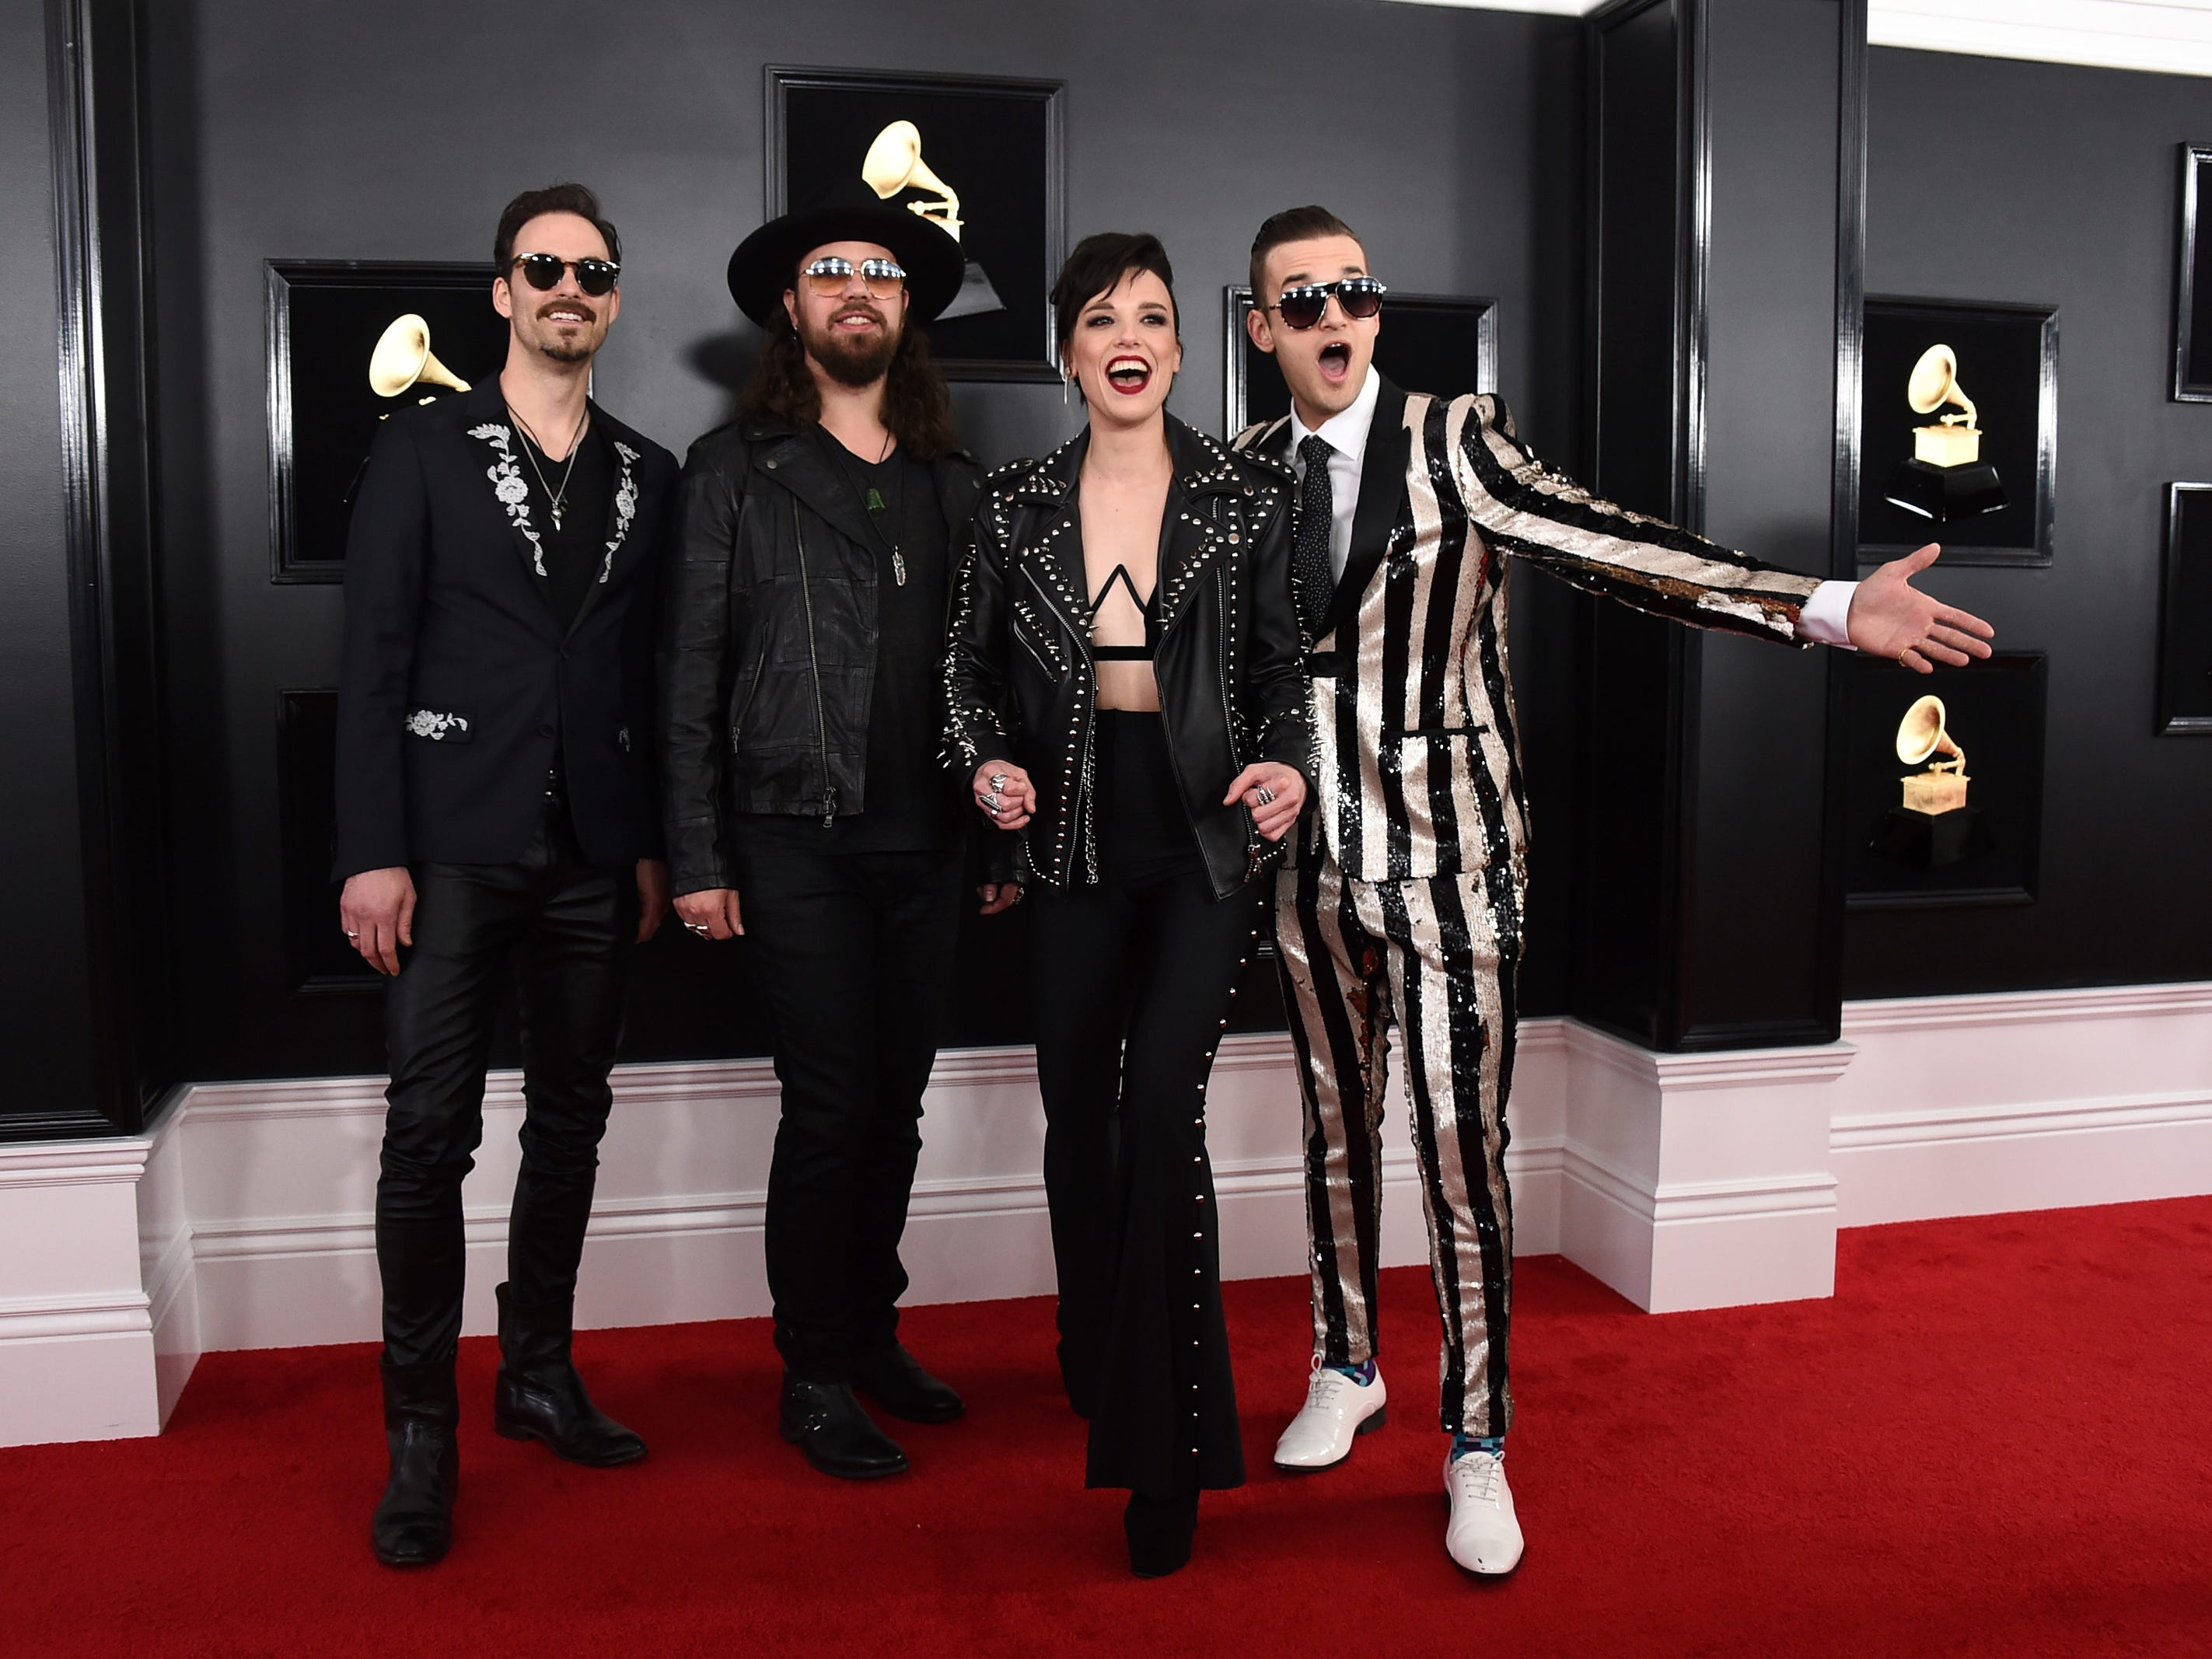 Josh Smith, from left, Joe Hottinger, Lzzy Hale, and Arejay Hale of Halestorm arrive at the 61st annual Grammy Awards at the Staples Center on Sunday, Feb. 10, 2019, in Los Angeles.